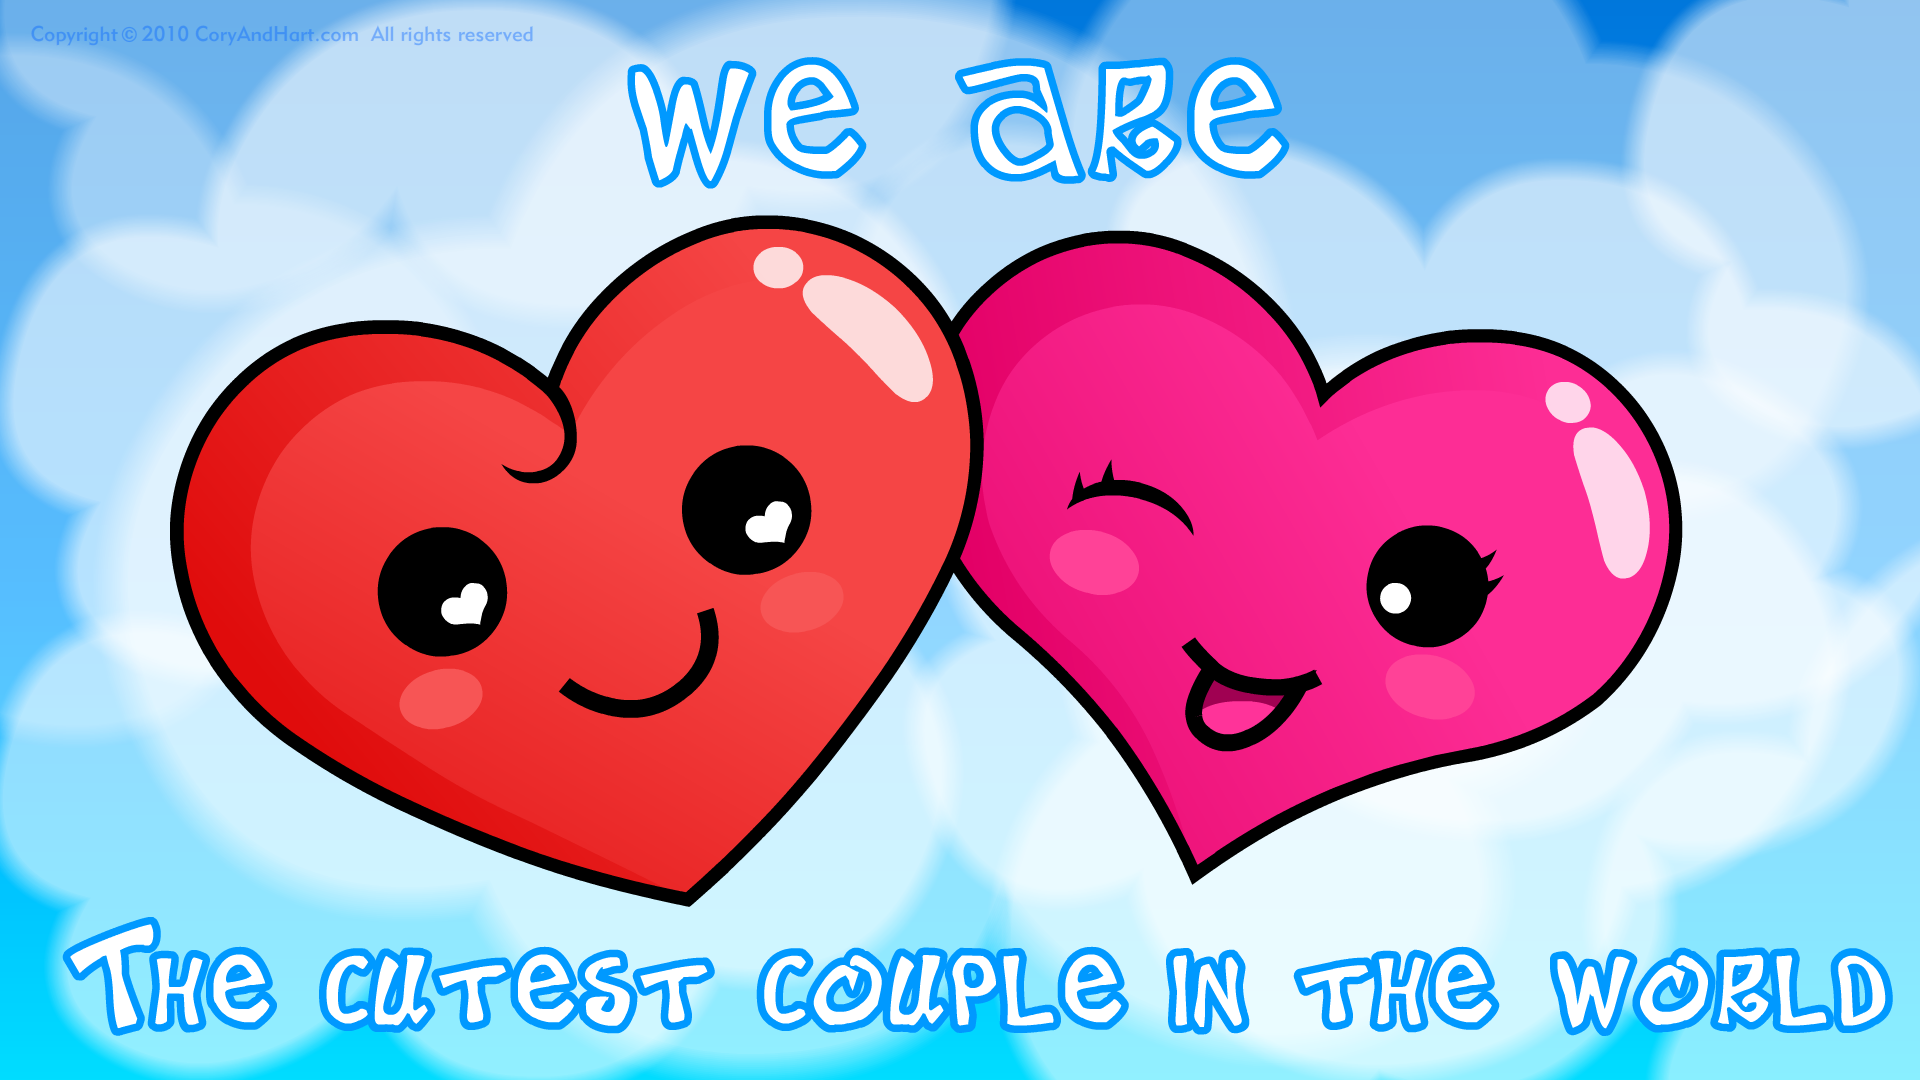 cute Love Wallpaper For Mobile Hd : cute Love Wallpapers For Mobile 28 Background - Hdlovewall.com